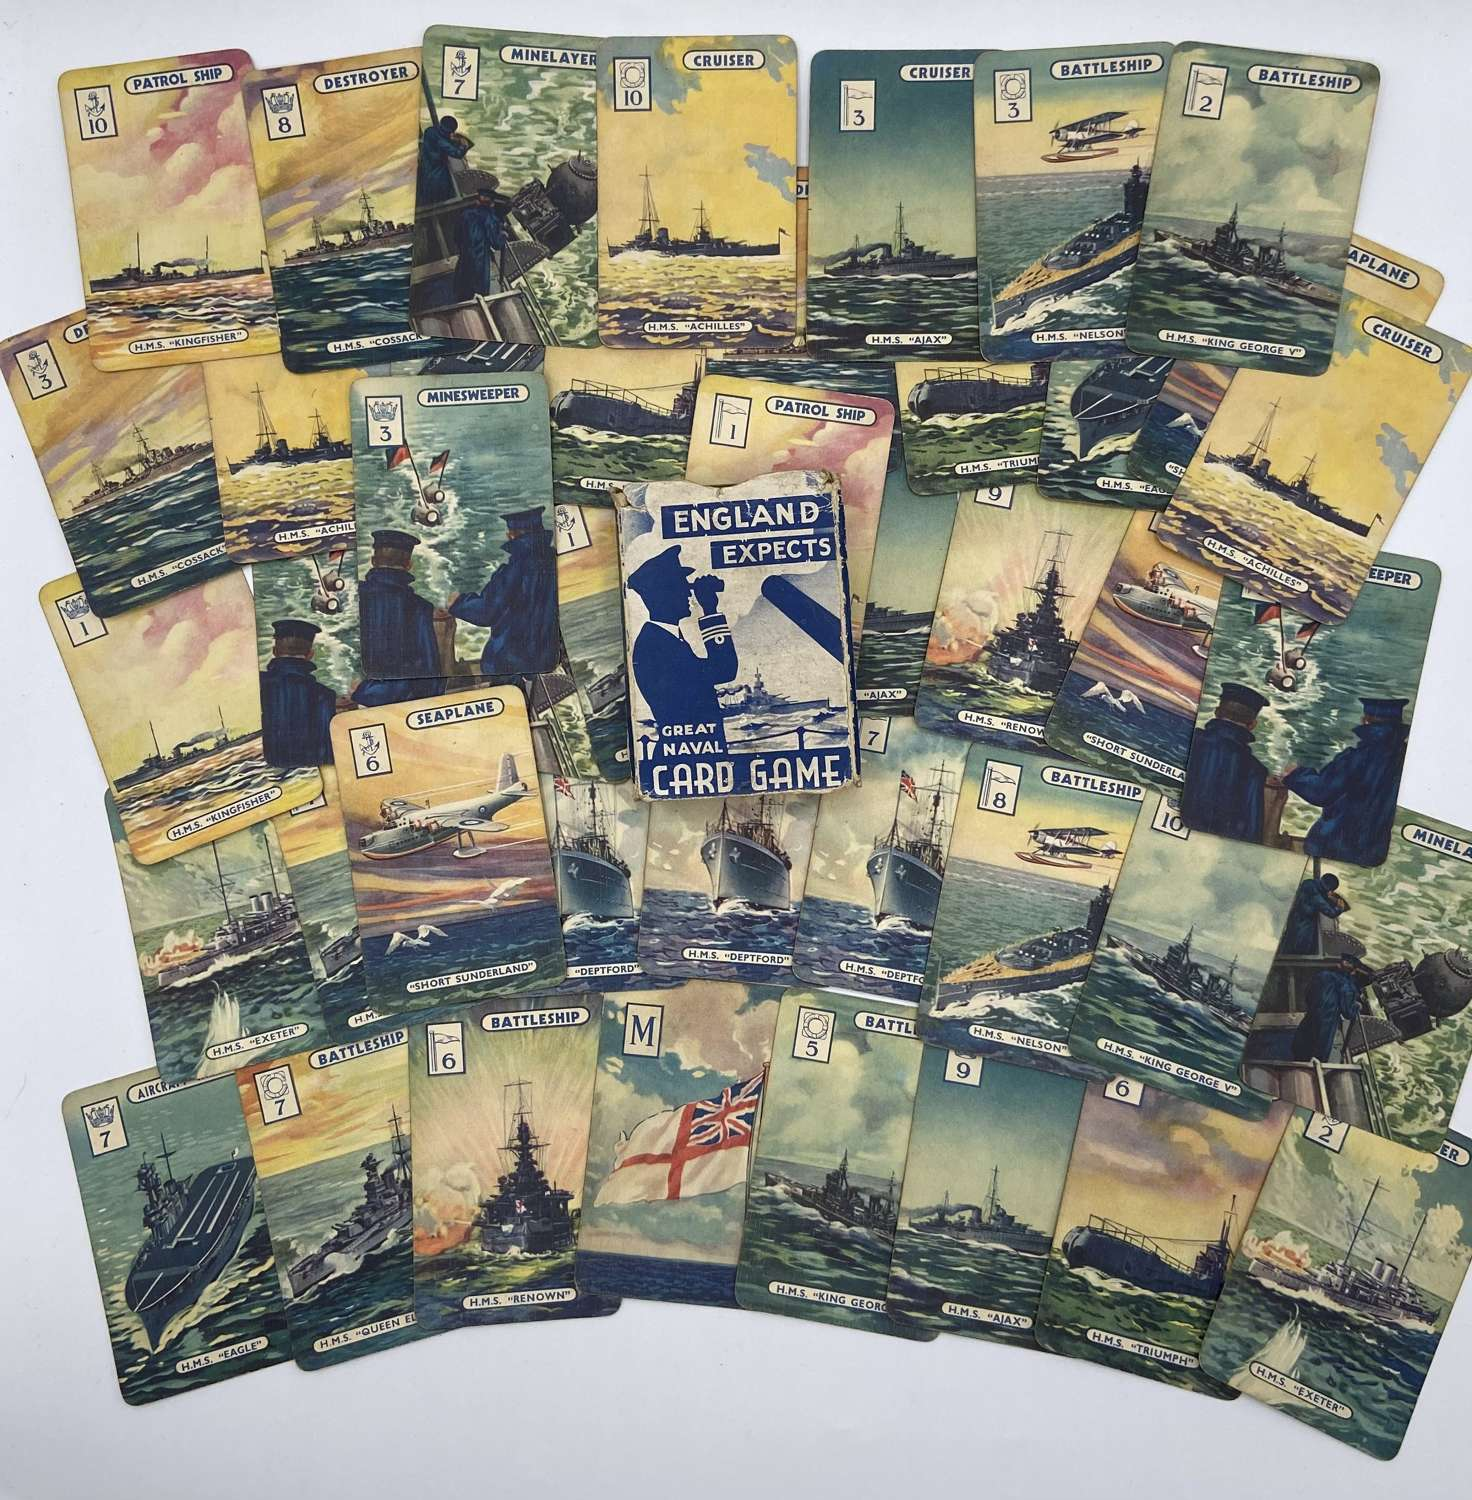 Ww2 1940 England Expects The Great Naval Card Game